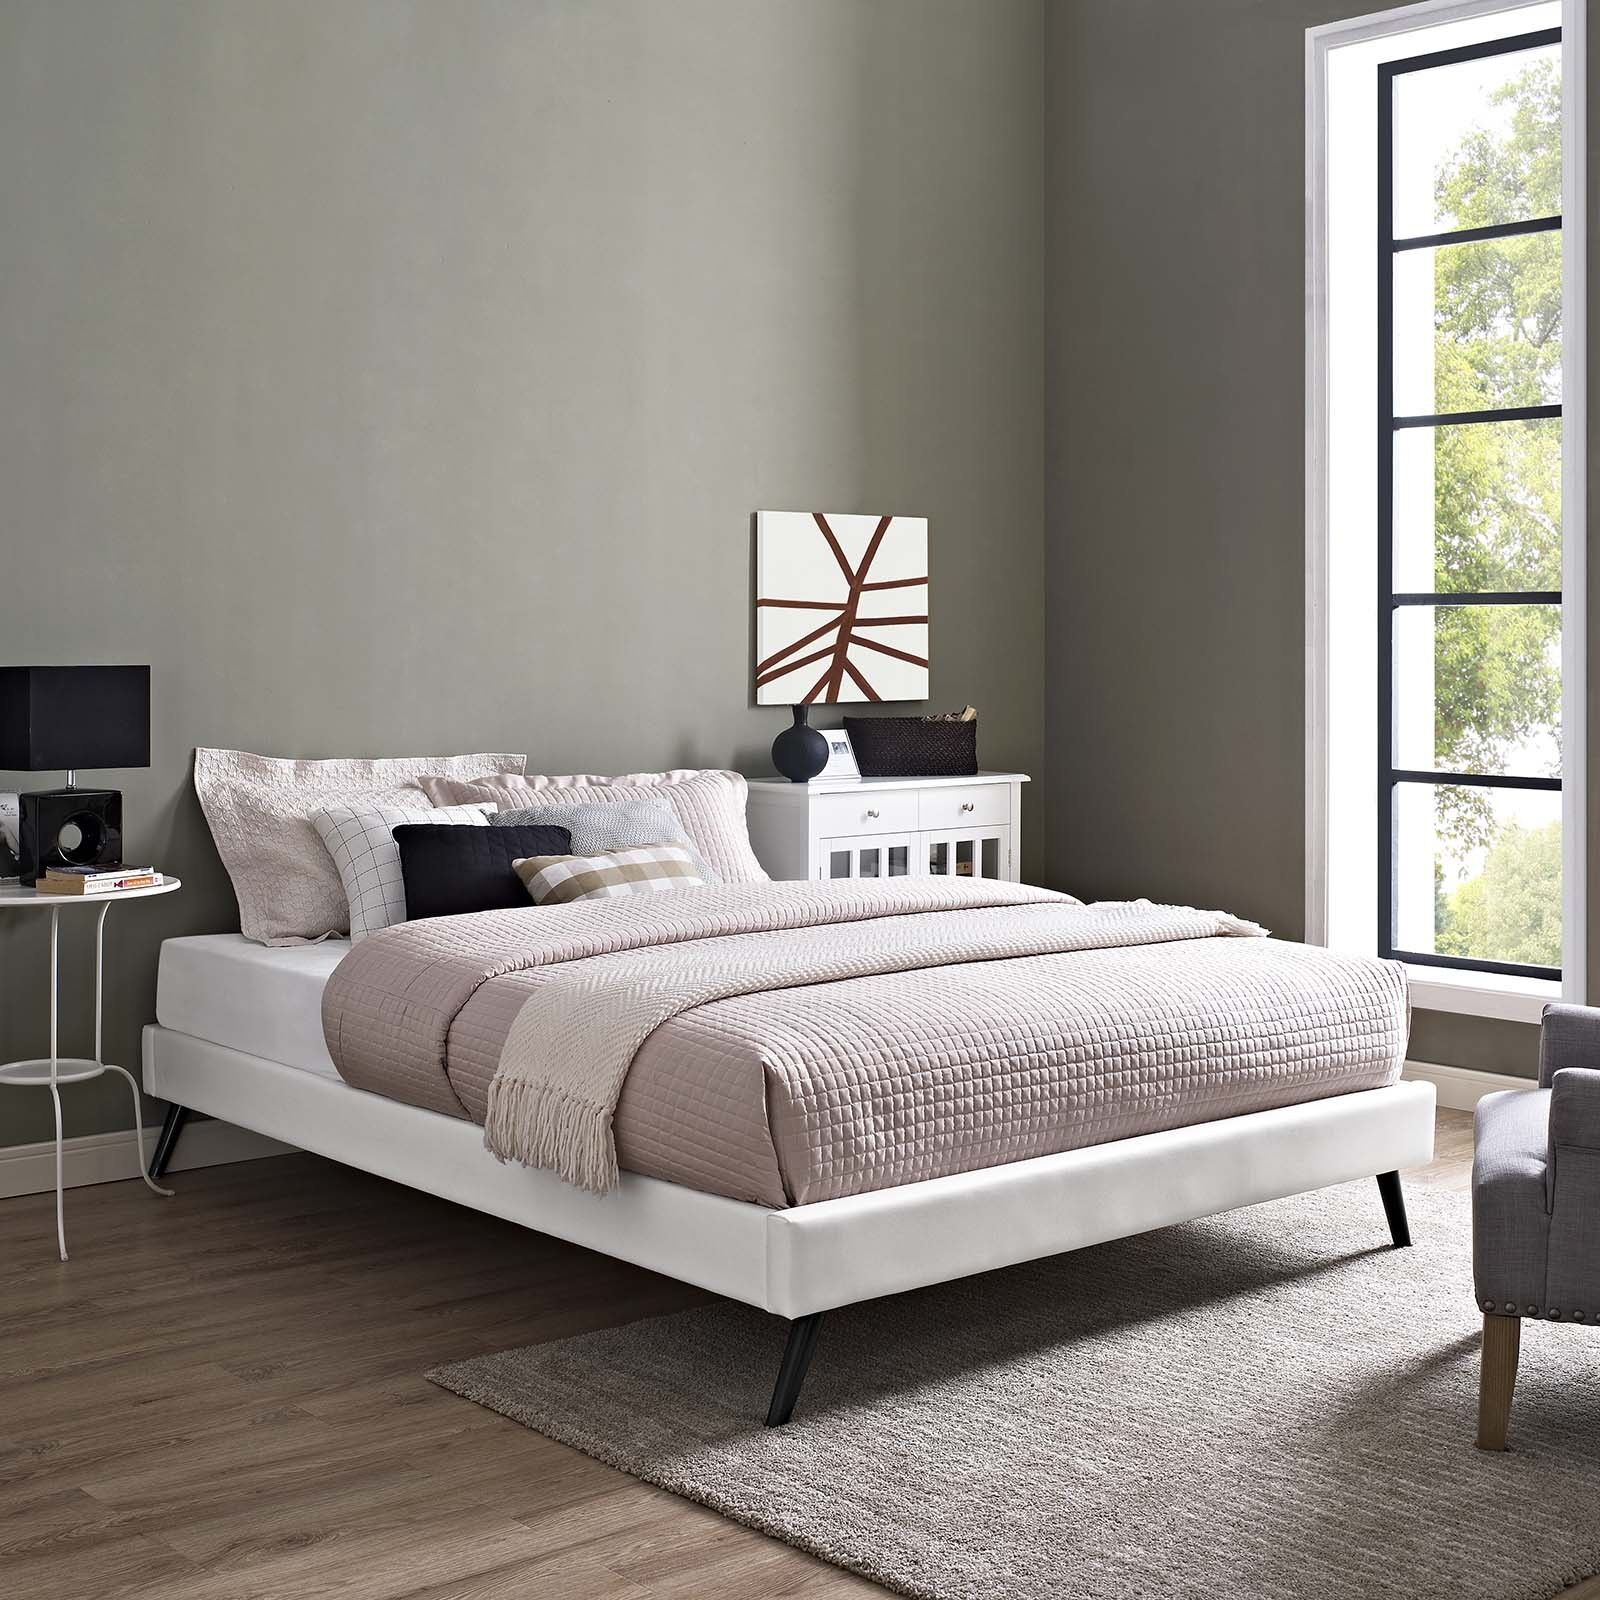 Details About Mid Century Modern Faux Leather Full Platform Bed Frame With Wood Slats In White